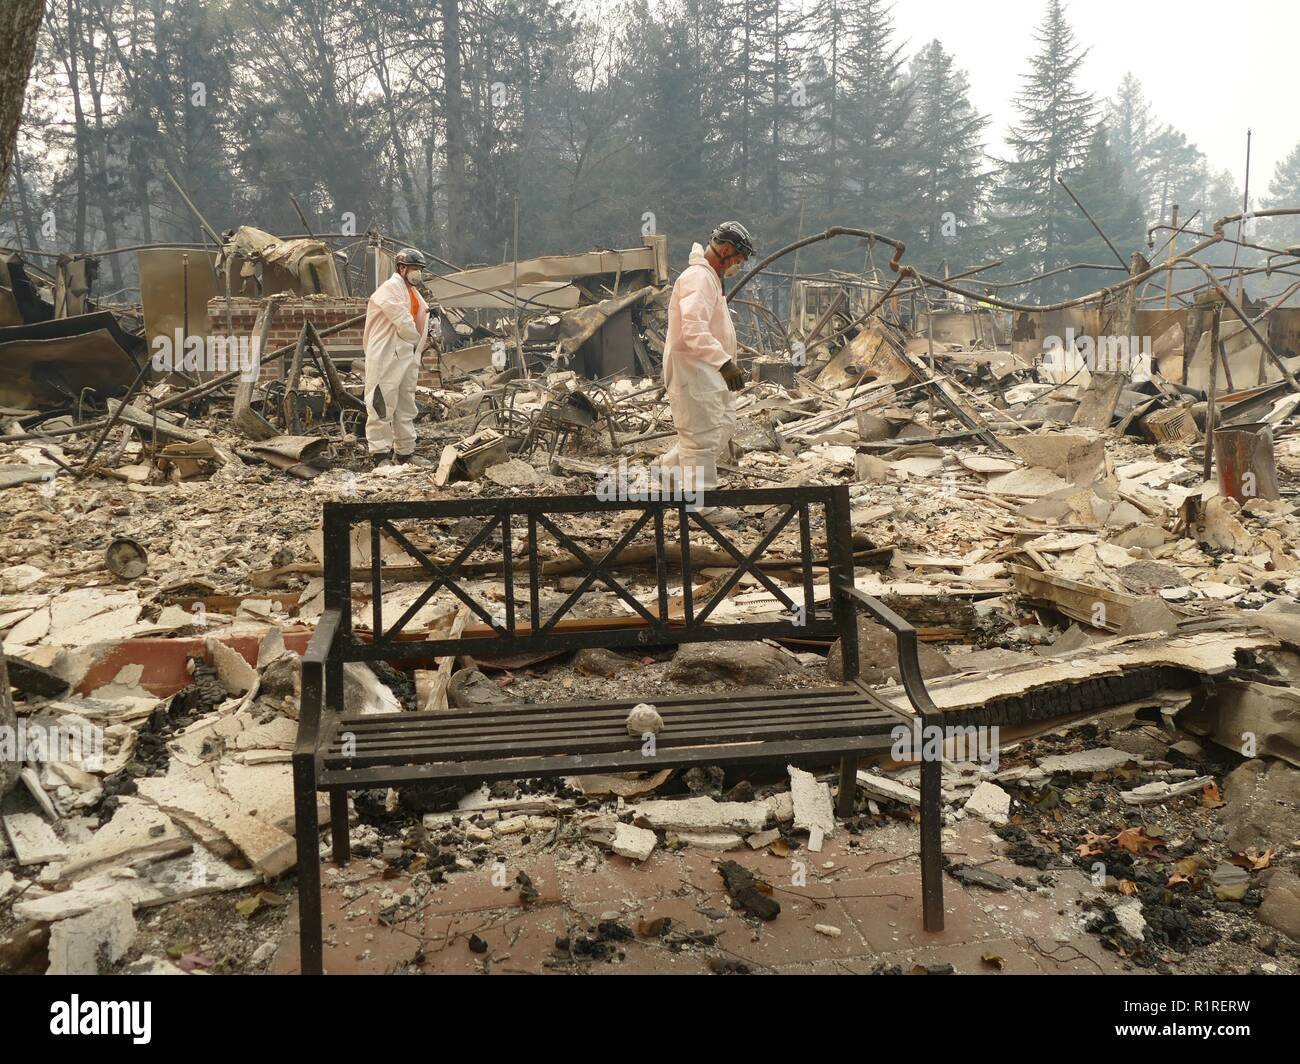 Paradise, USA. 13th Nov, 2018. Rescue workers search the burned rubble of a burned nursing home. Paradise has become a ghost town. Only fire engines and fire engines drive through the spooky landscape. Residents are not allowed to return for the time being. (to dpa 'Paradise as hell on earth - 'Will create a new church' of 14.11.2018) Credit: Barbara Munker/dpa/Alamy Live News - Stock Image